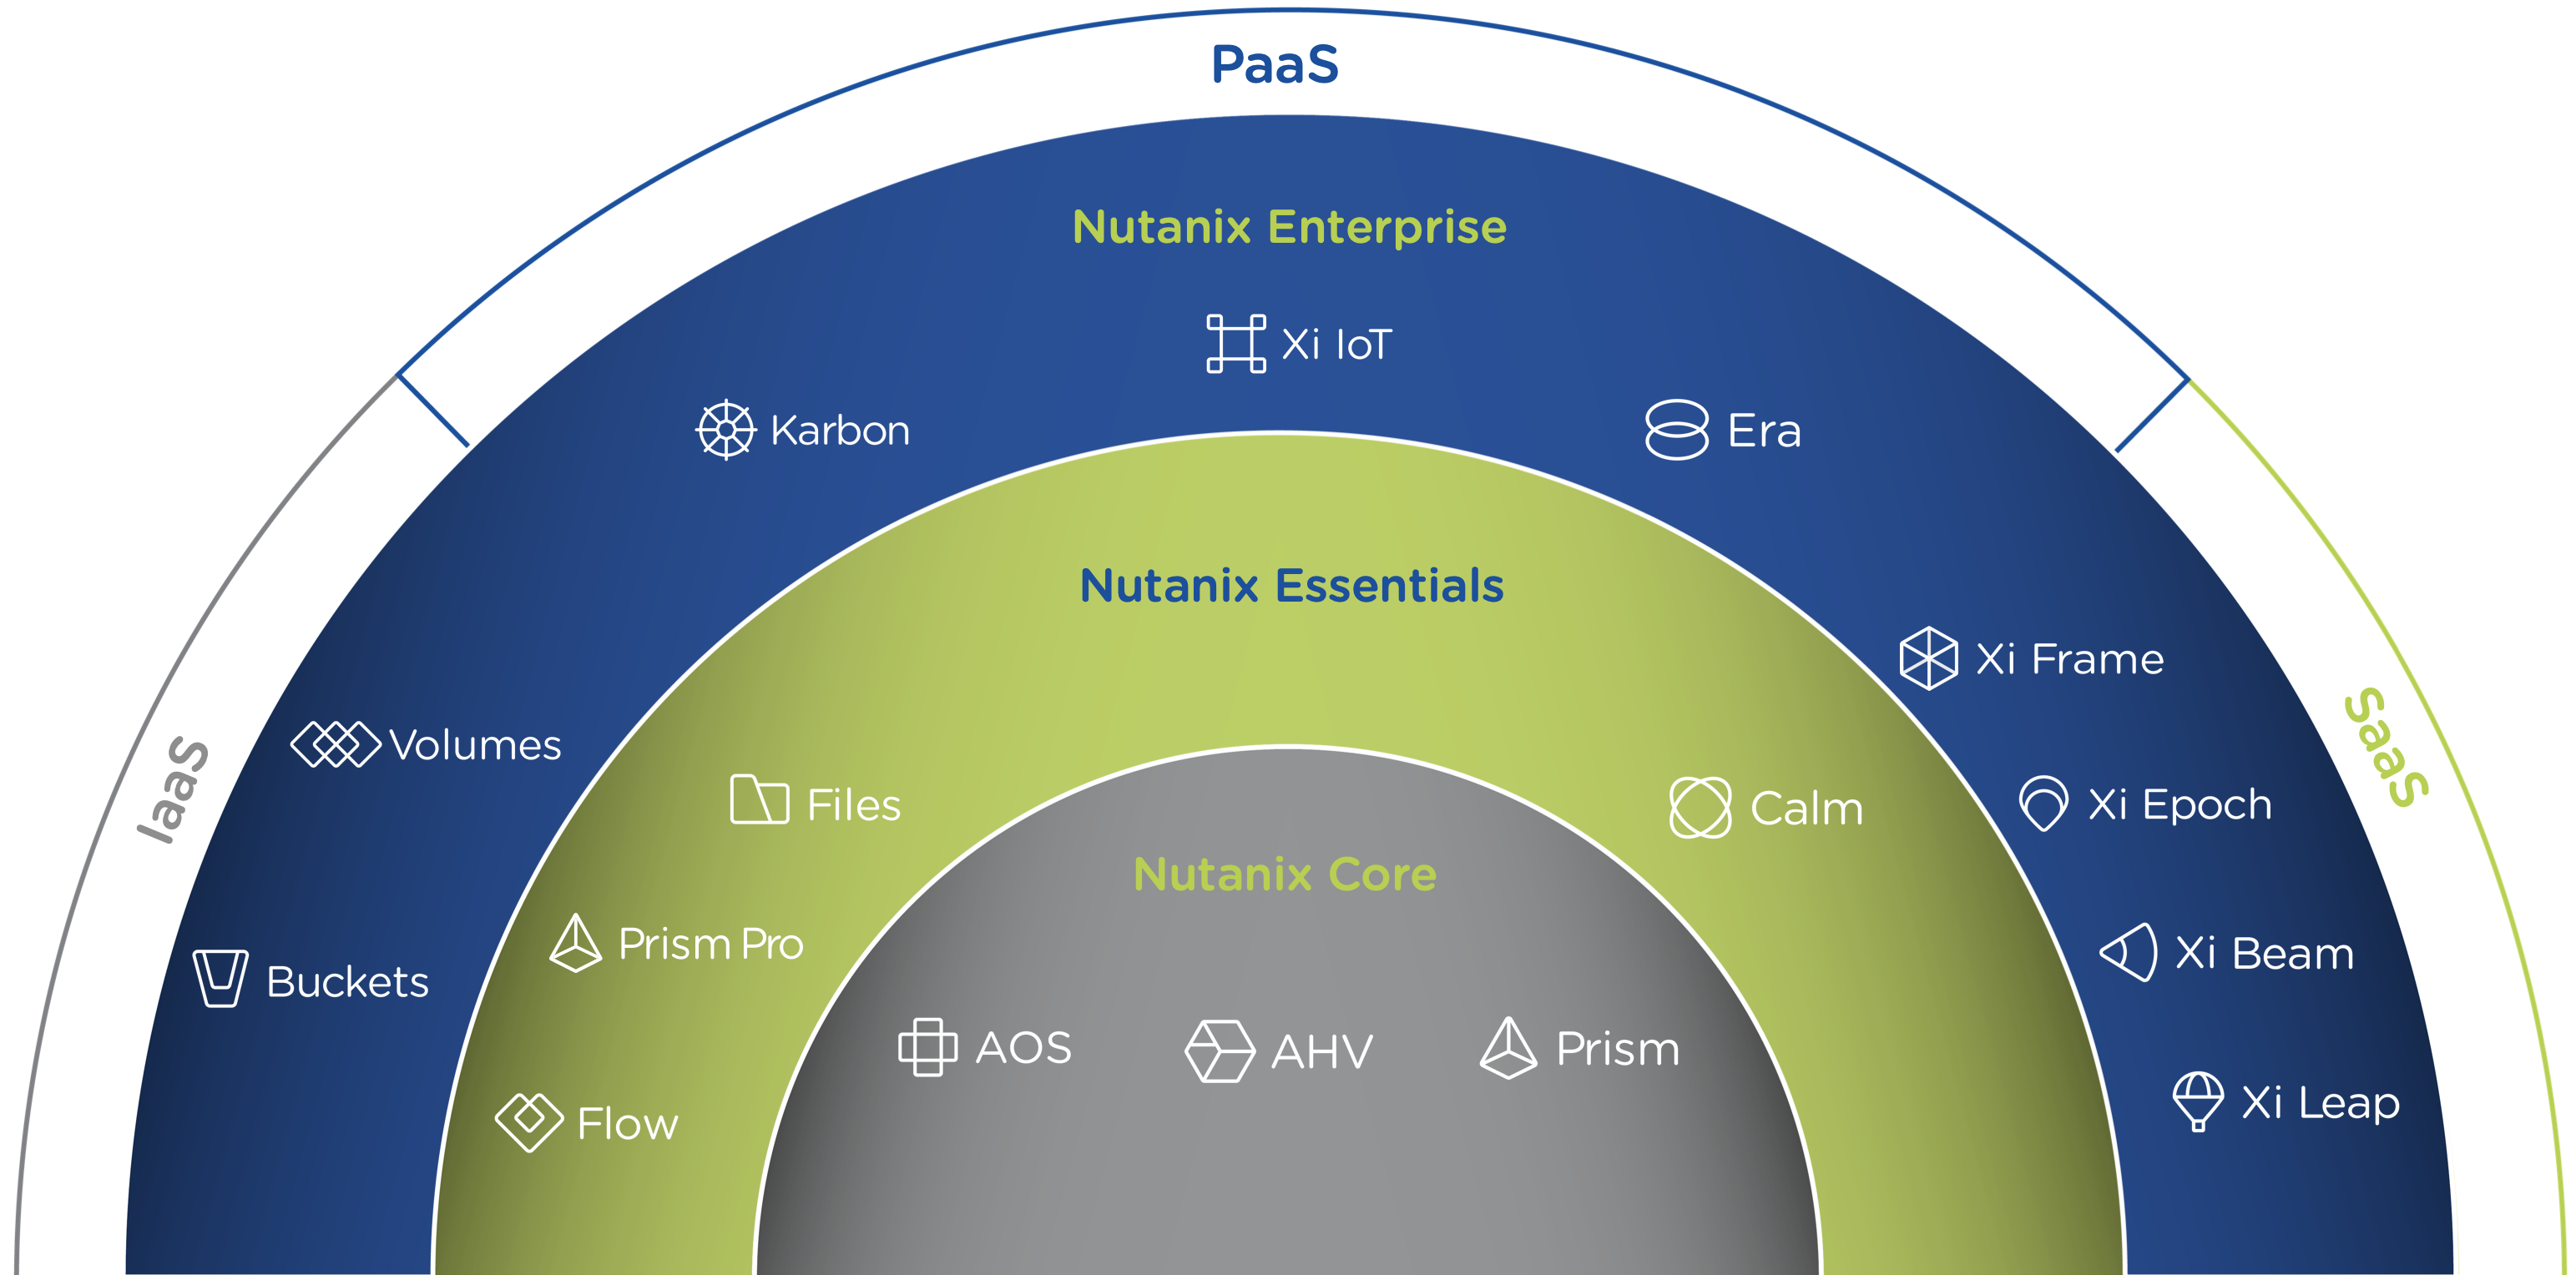 Products Ecosystem - Hybrid Cloud